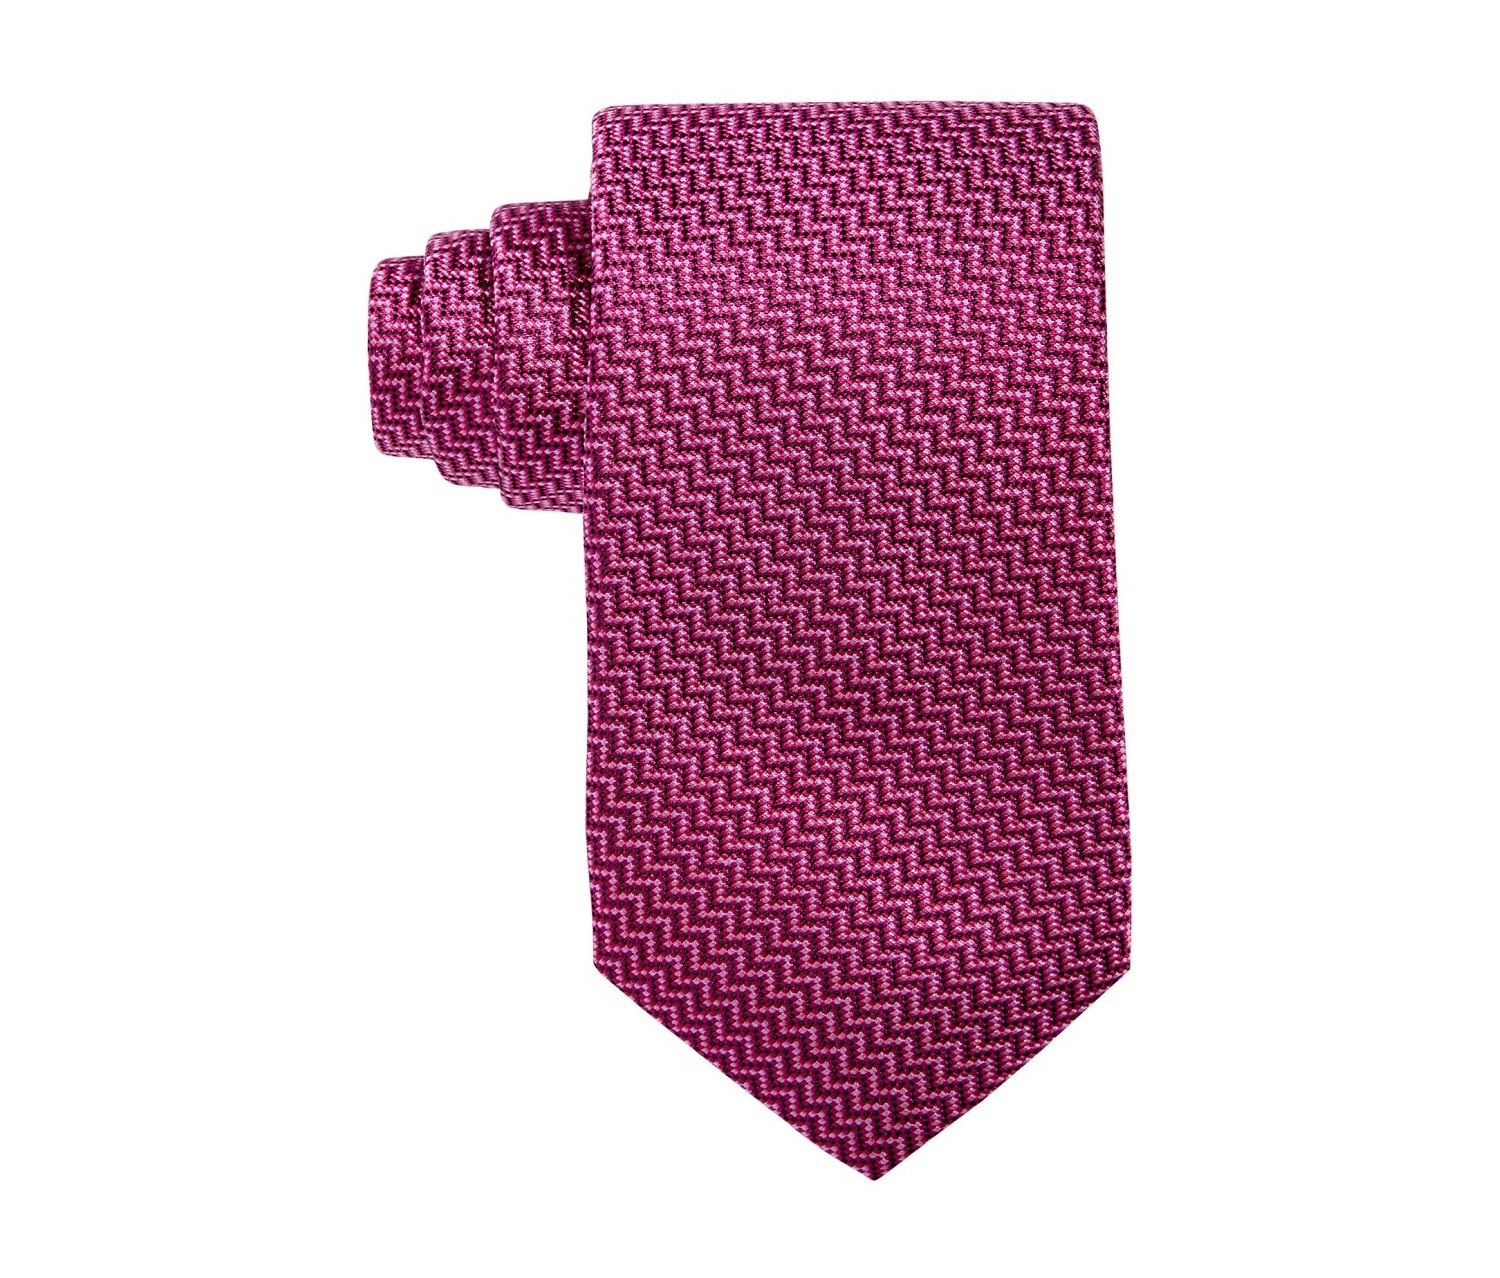 dd416ffe247ae0 Shop Alfani Alfani Men's Geo Slim Tie, Berry for Men Clothing in ...